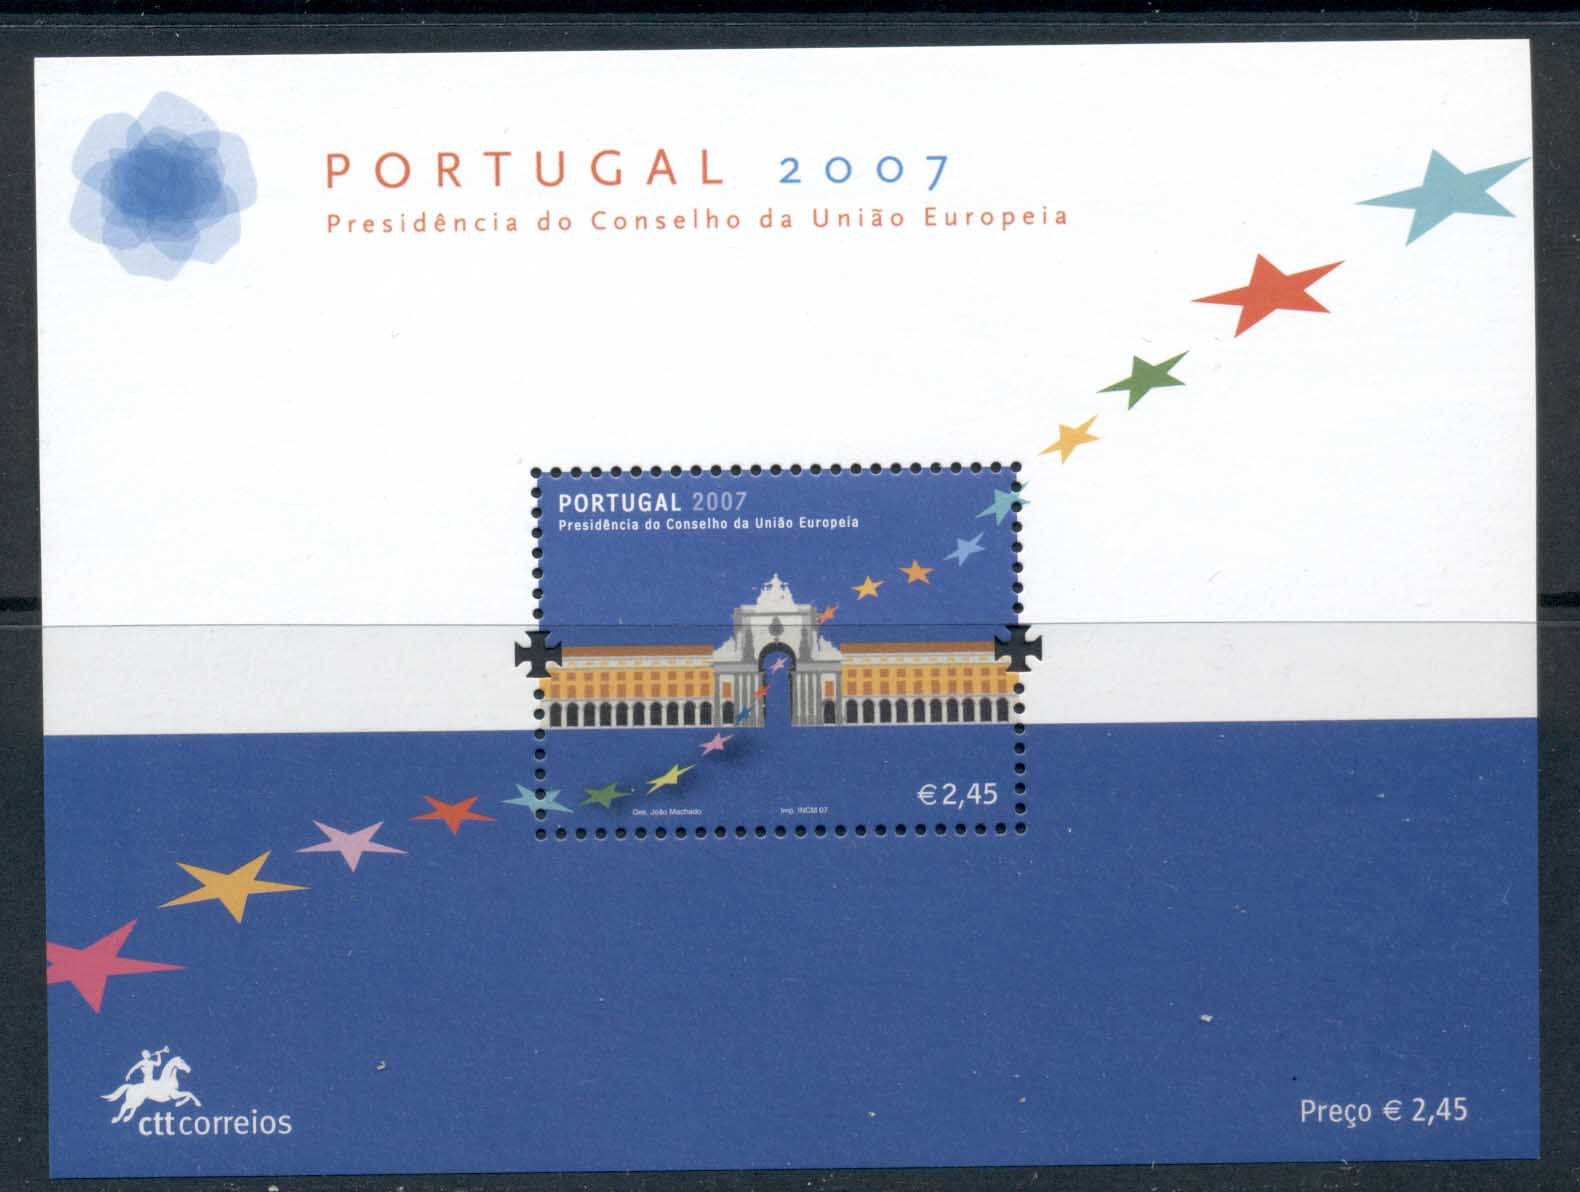 Portugal 2007 Presidency of the Council of Europe MS MUH